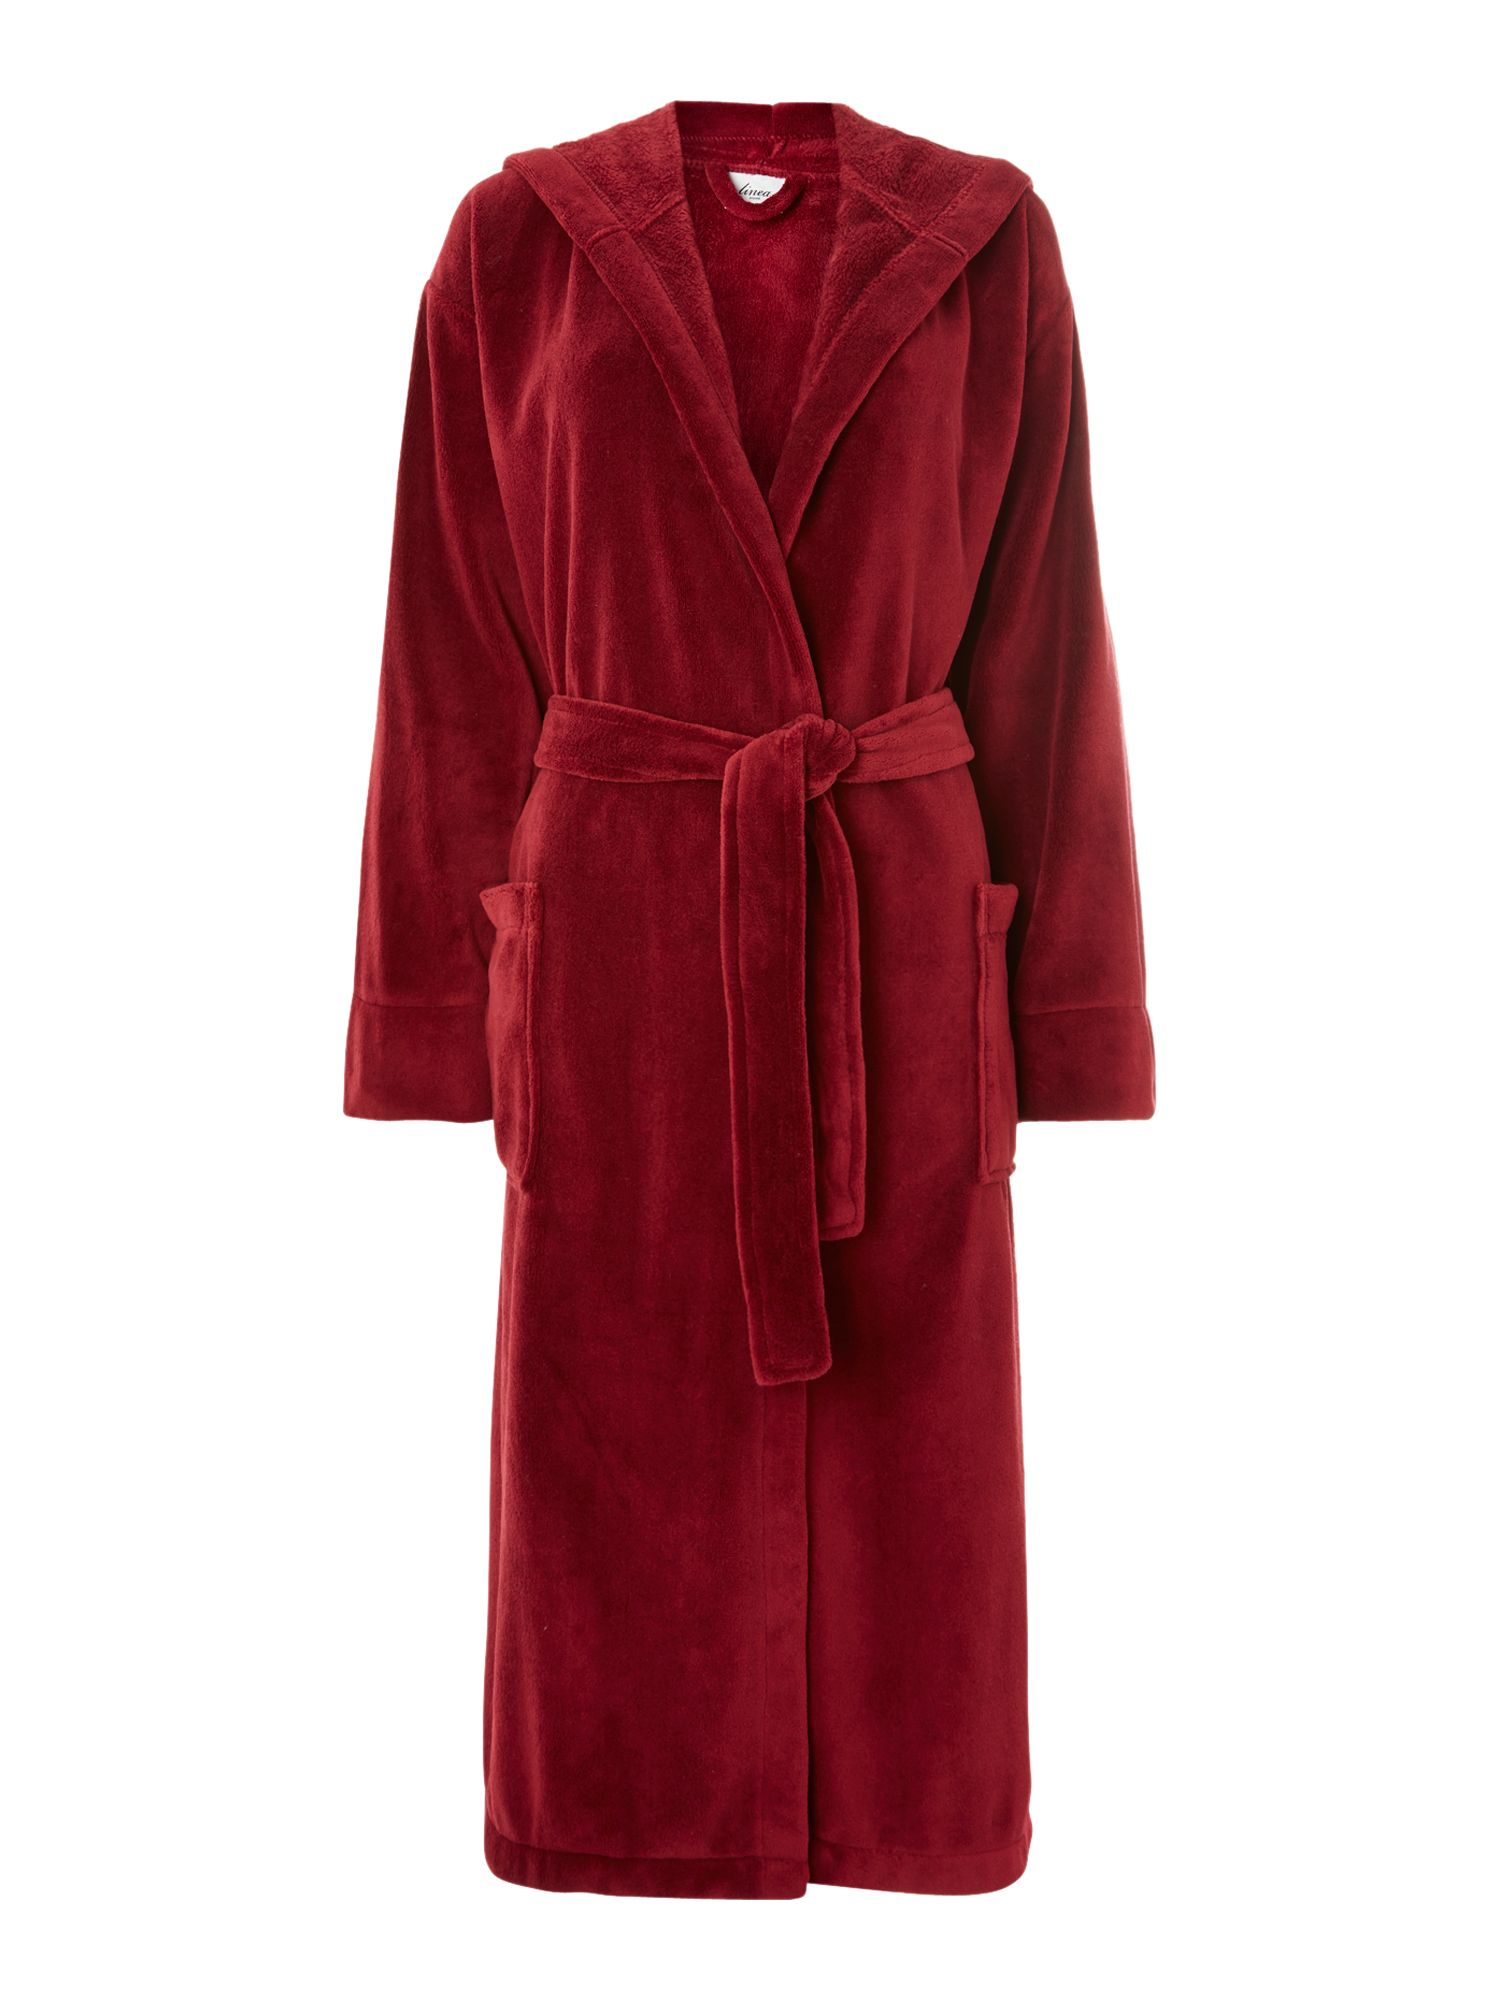 Fleece robe with hood in red s/m